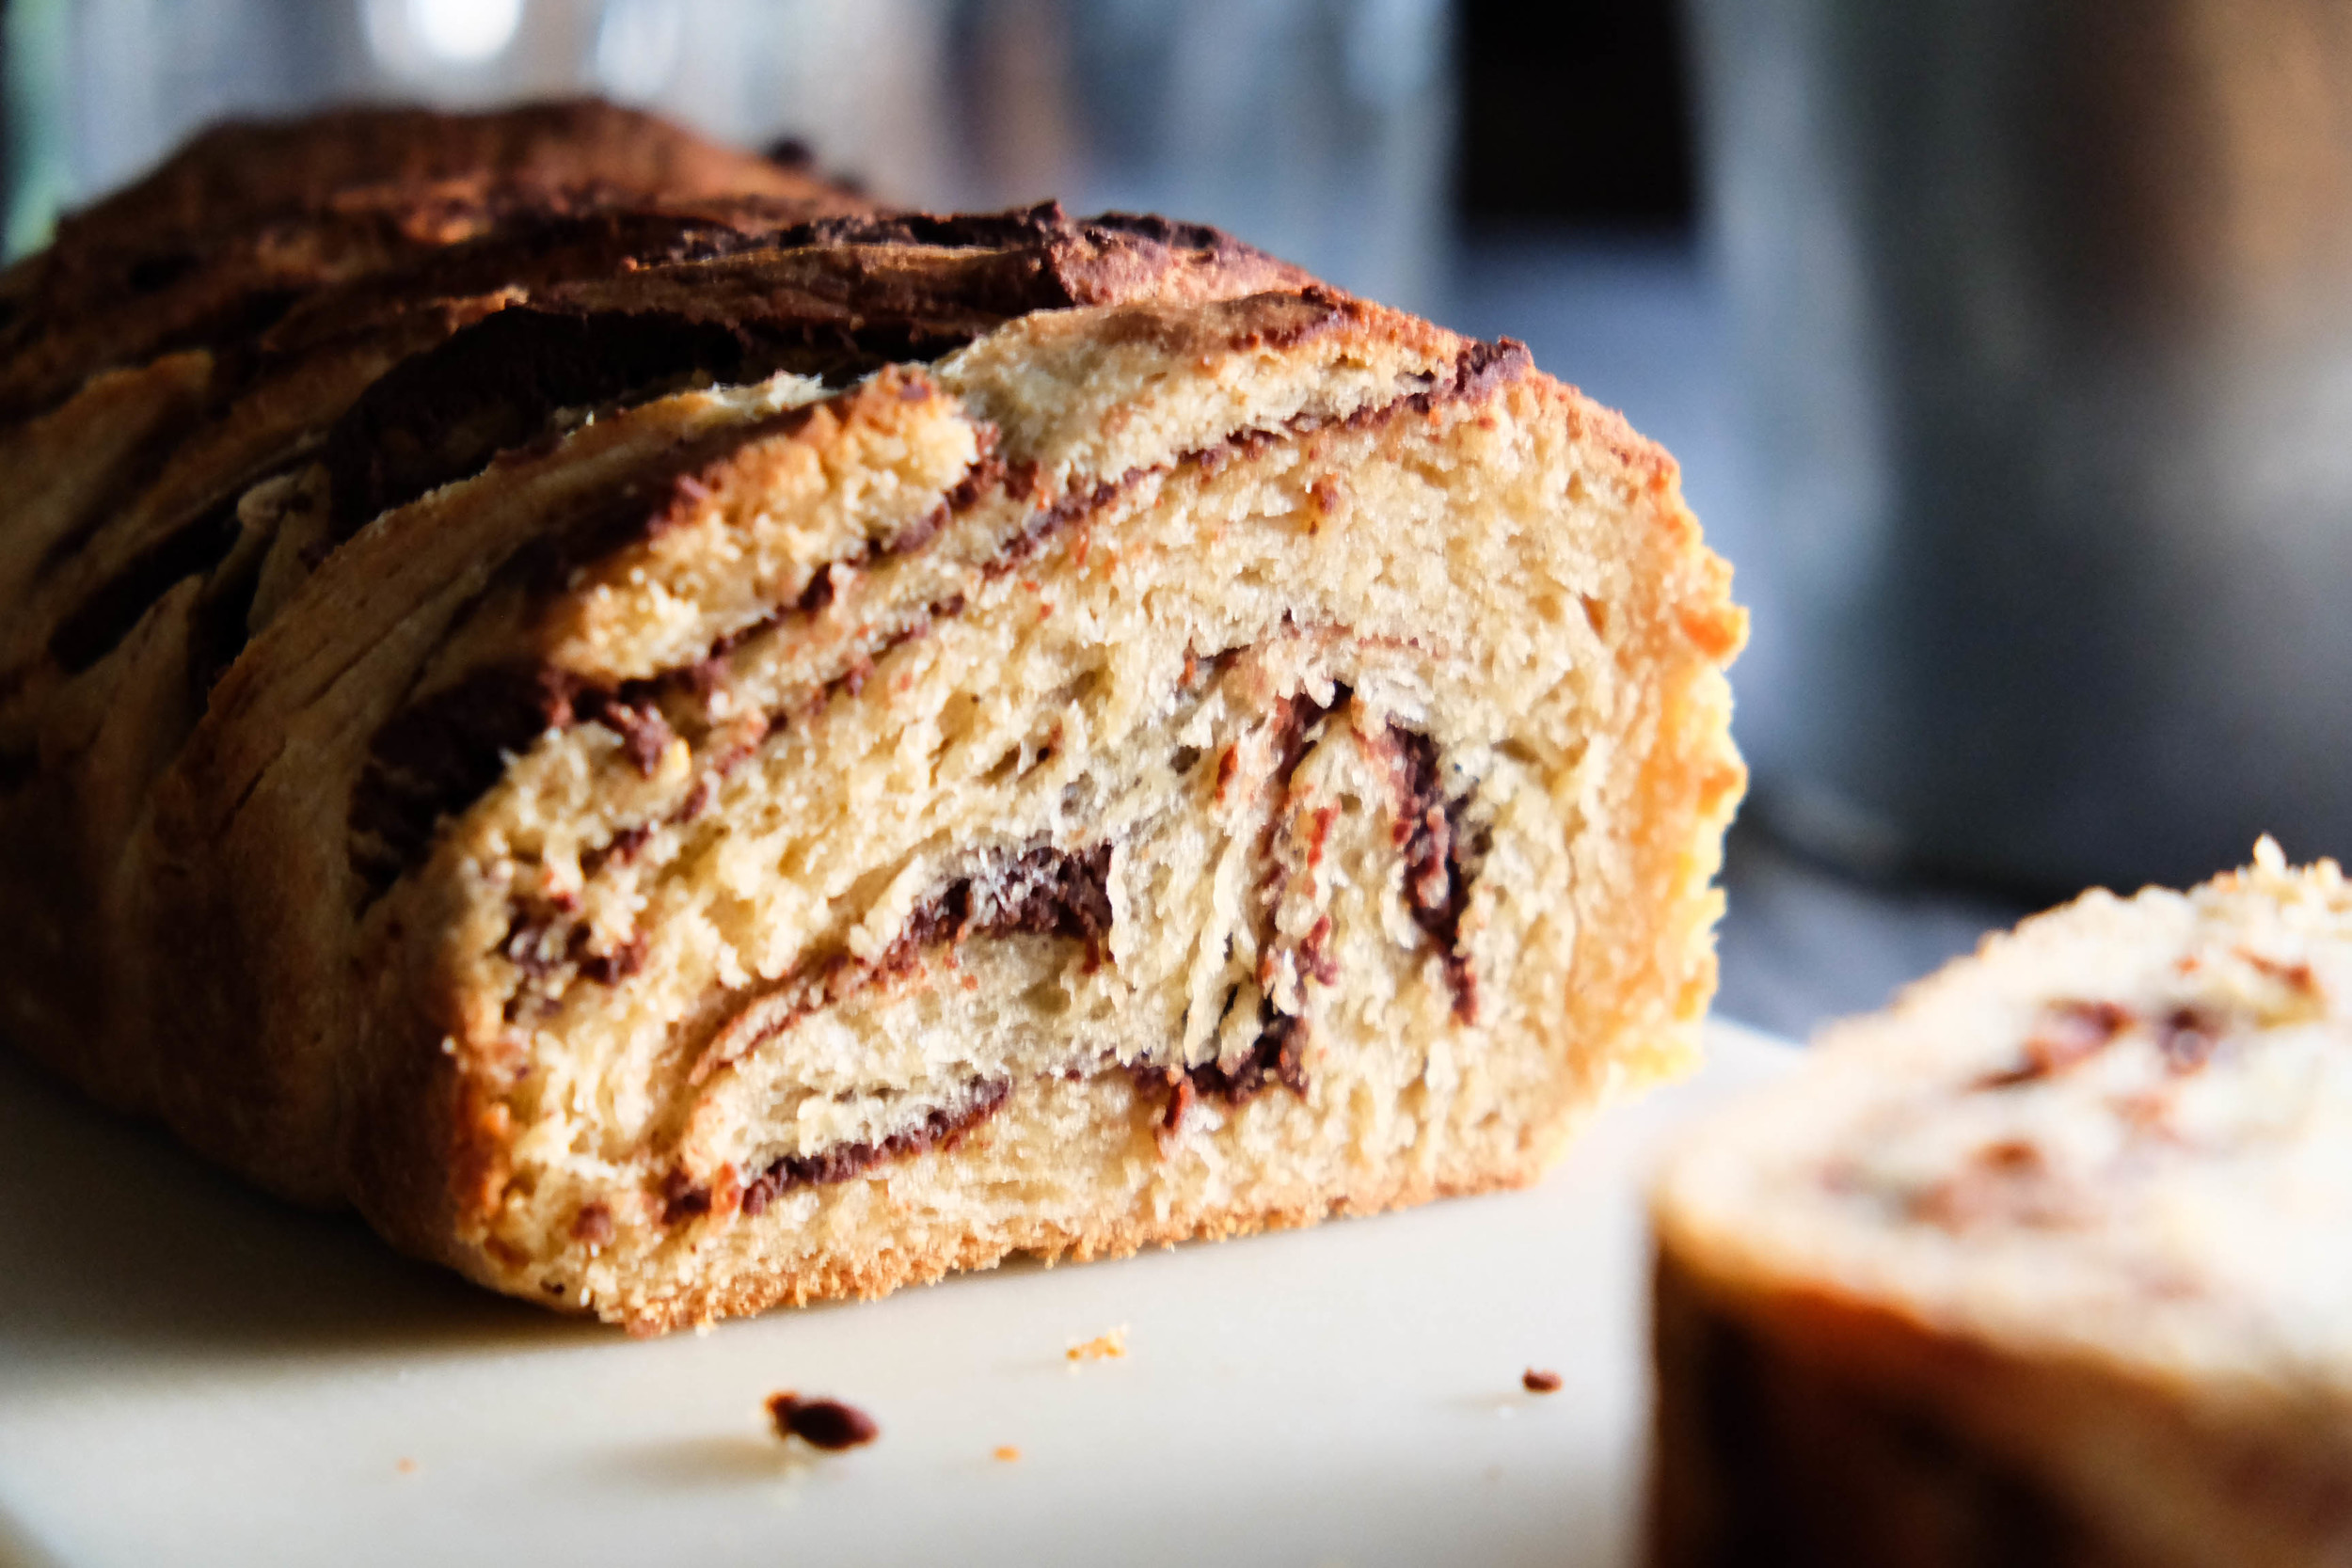 the middle of a perfectly baked healthy nutella babka